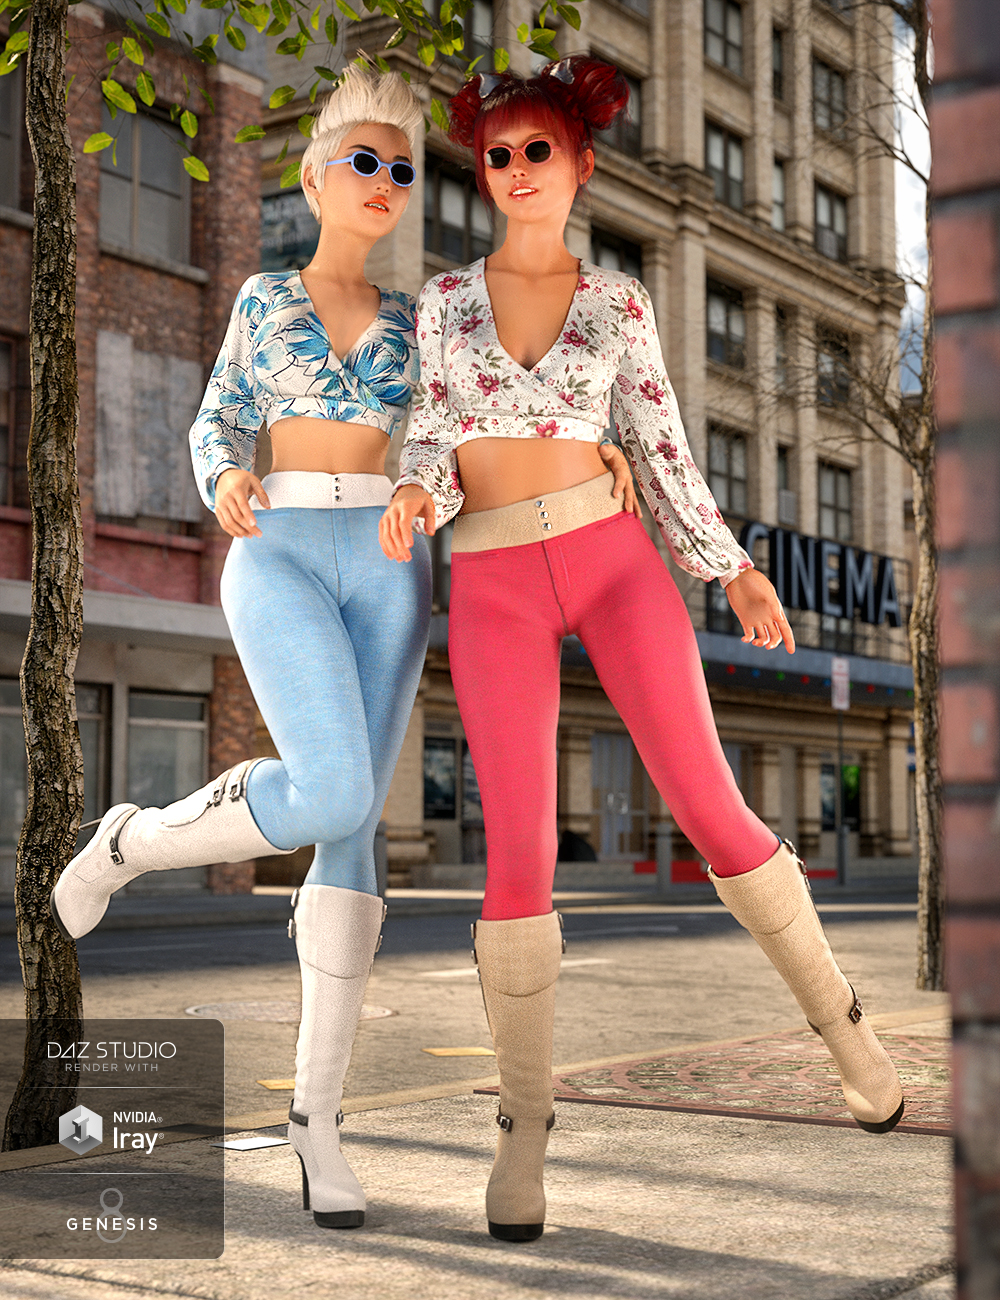 dForce City Sleek Outfit Textures by: Moonscape GraphicsSade, 3D Models by Daz 3D